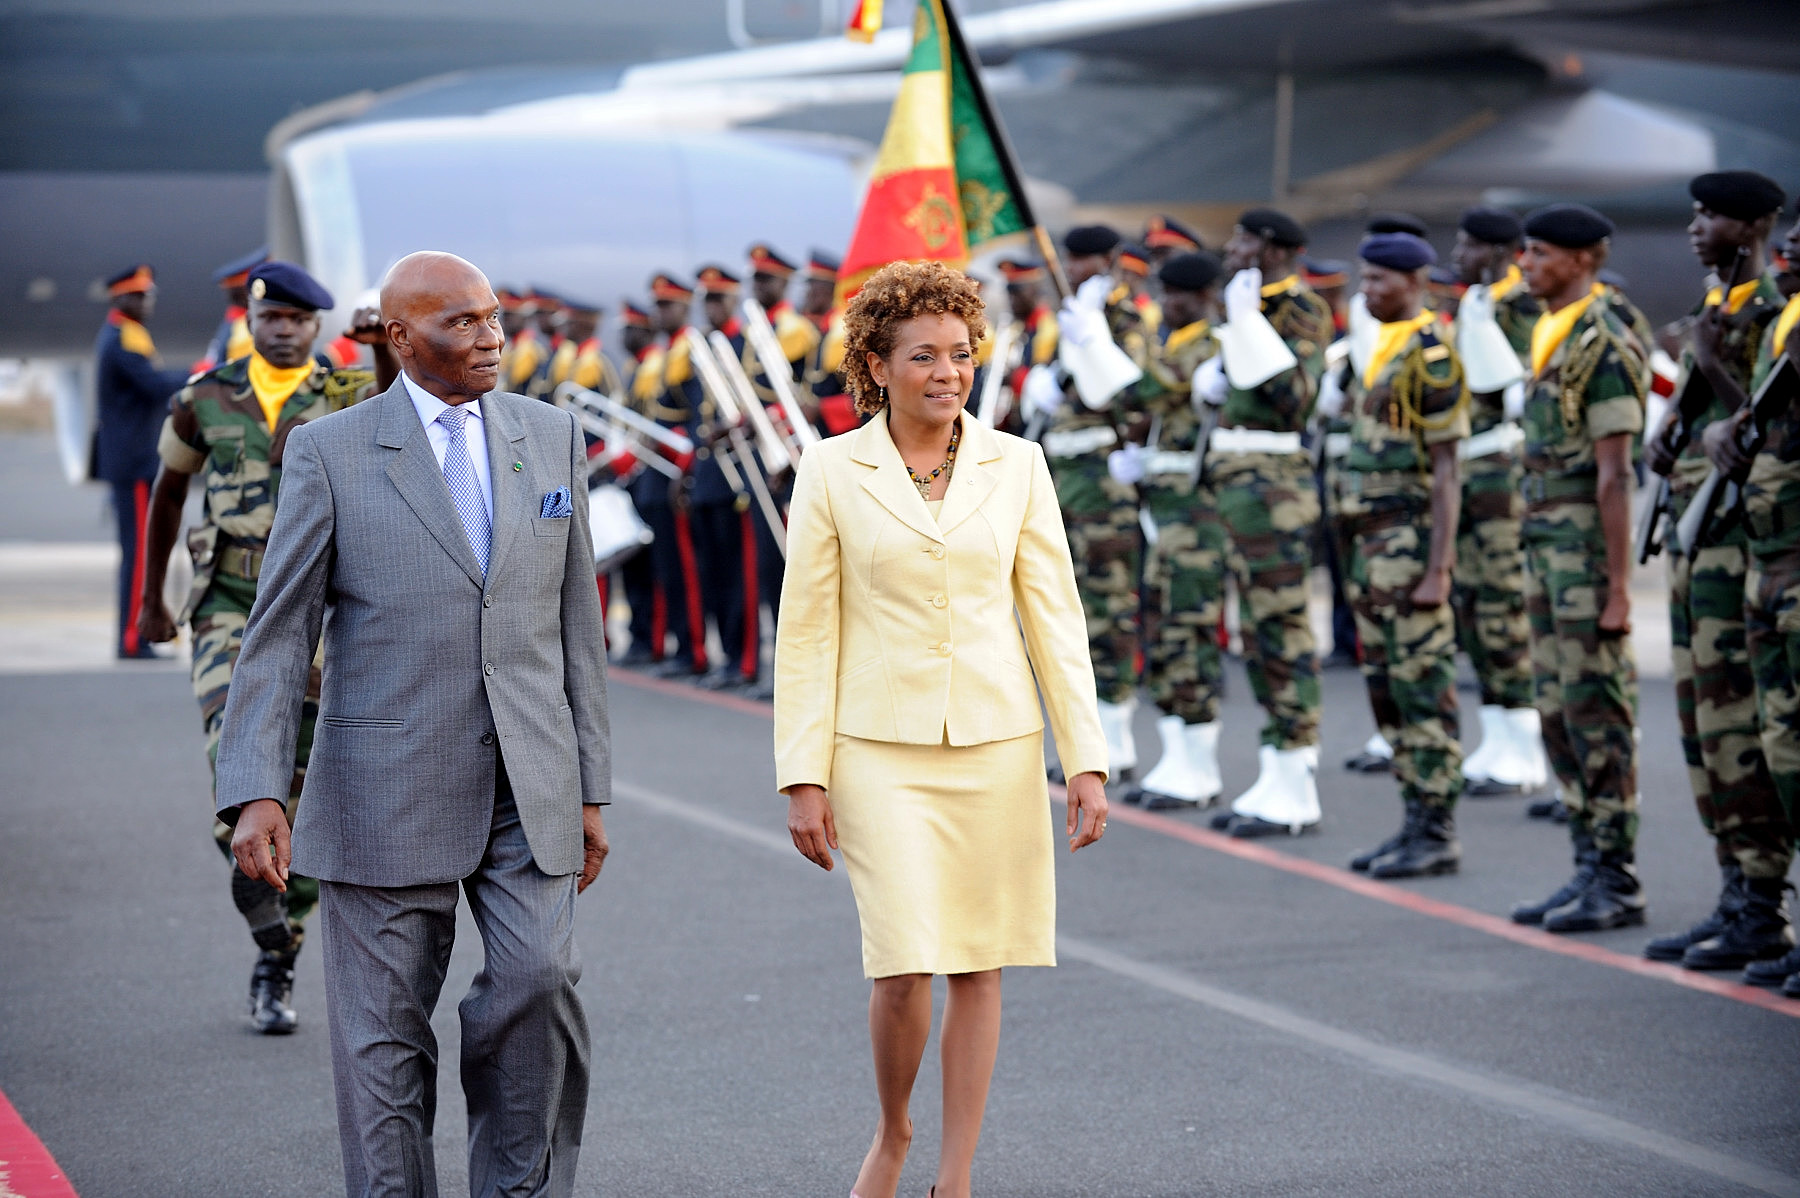 The Governor General arrived in Senegal to undertake a State visit from April 18 to 20. Her Excellency was welcomed by His Excellency Abdoulaye Wade, President of the Republic of Senegal